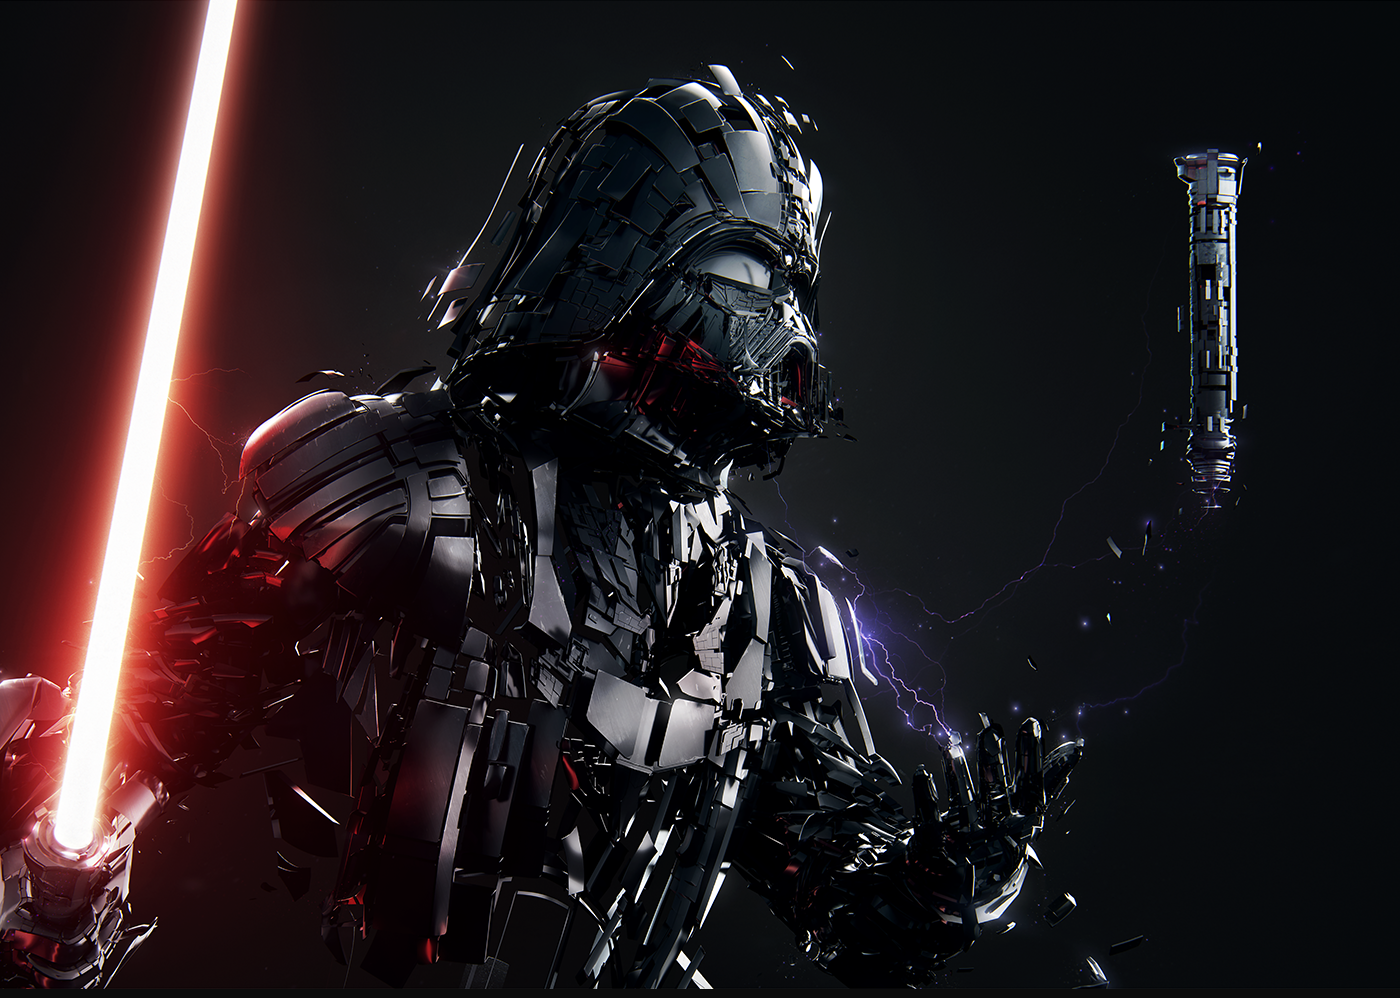 The Project Depicts Iconic Star Wars Characters With Jj Abram S Uber Realistic Zeitgeist Approach Darth Vader Wallpaper Star Wars Wallpaper Star Wars Fan Art